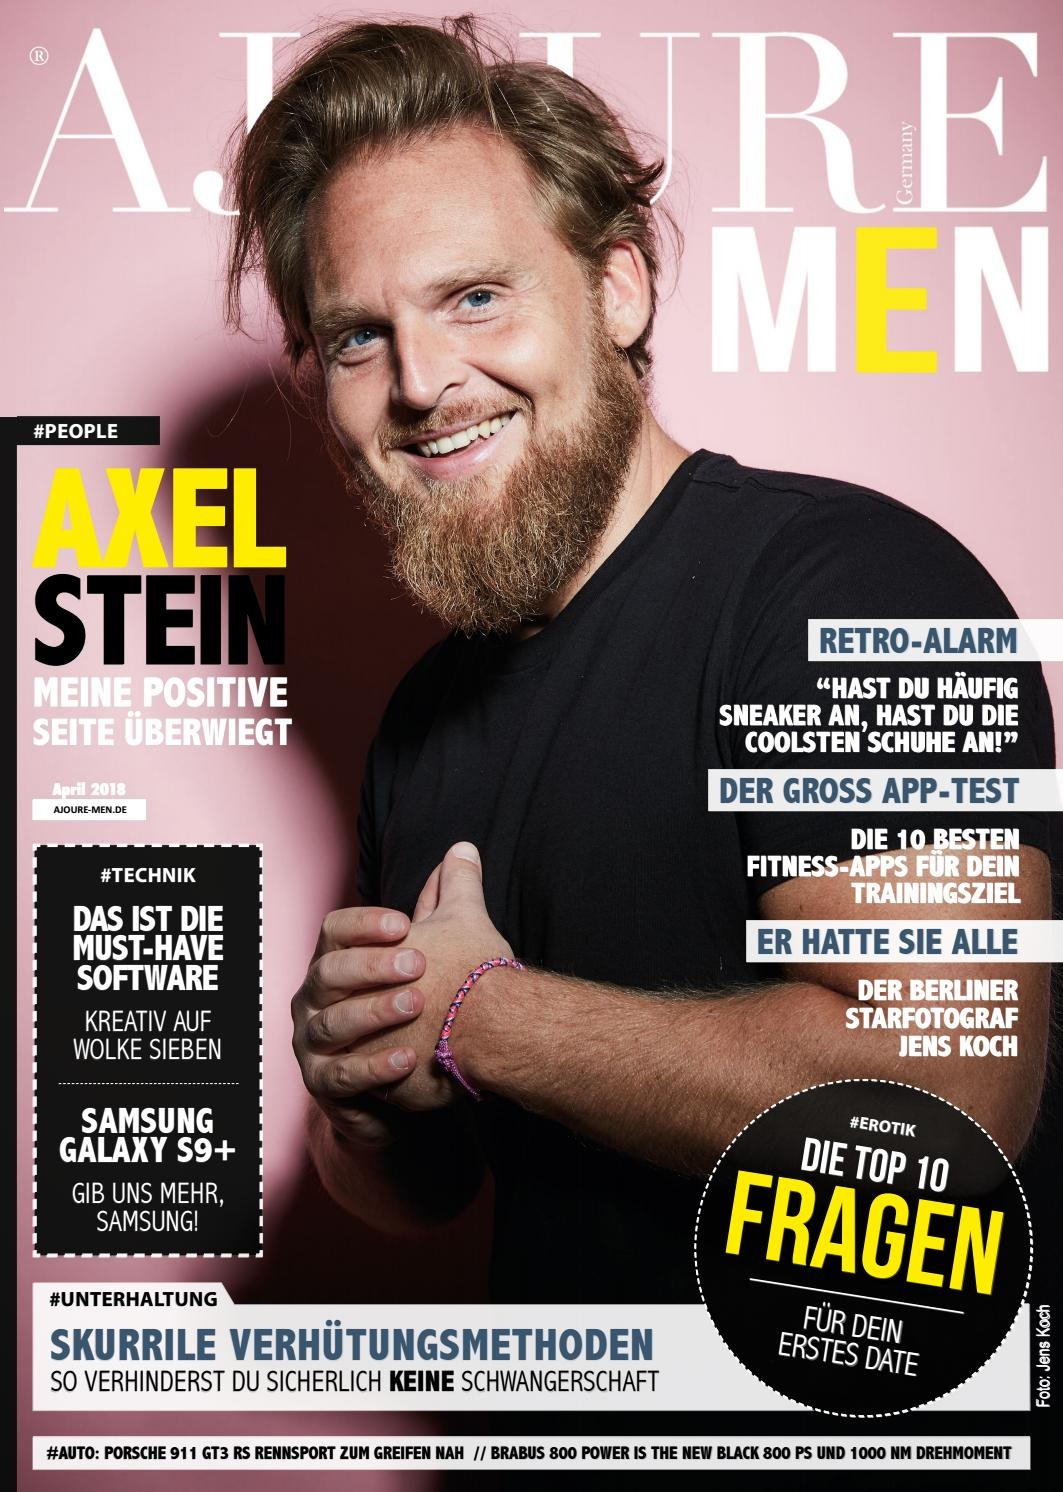 Ajoure Men Magazin April 2018 By Germany Issuu Vorsatz A1 Complete Hair Loss Treatment Systems